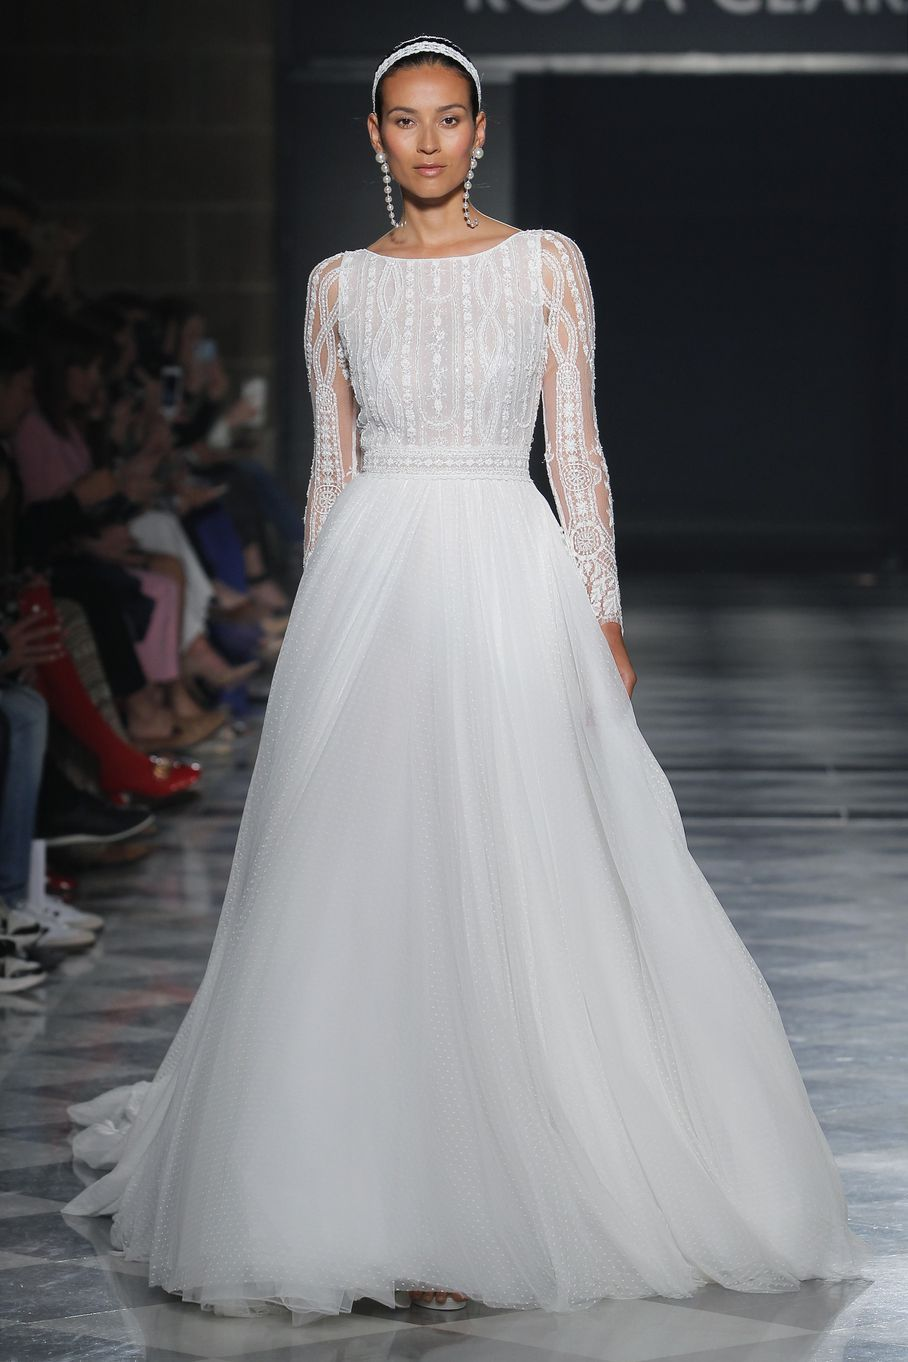 Rosa Clará Bridal Spring 2020 Top wedding dresses